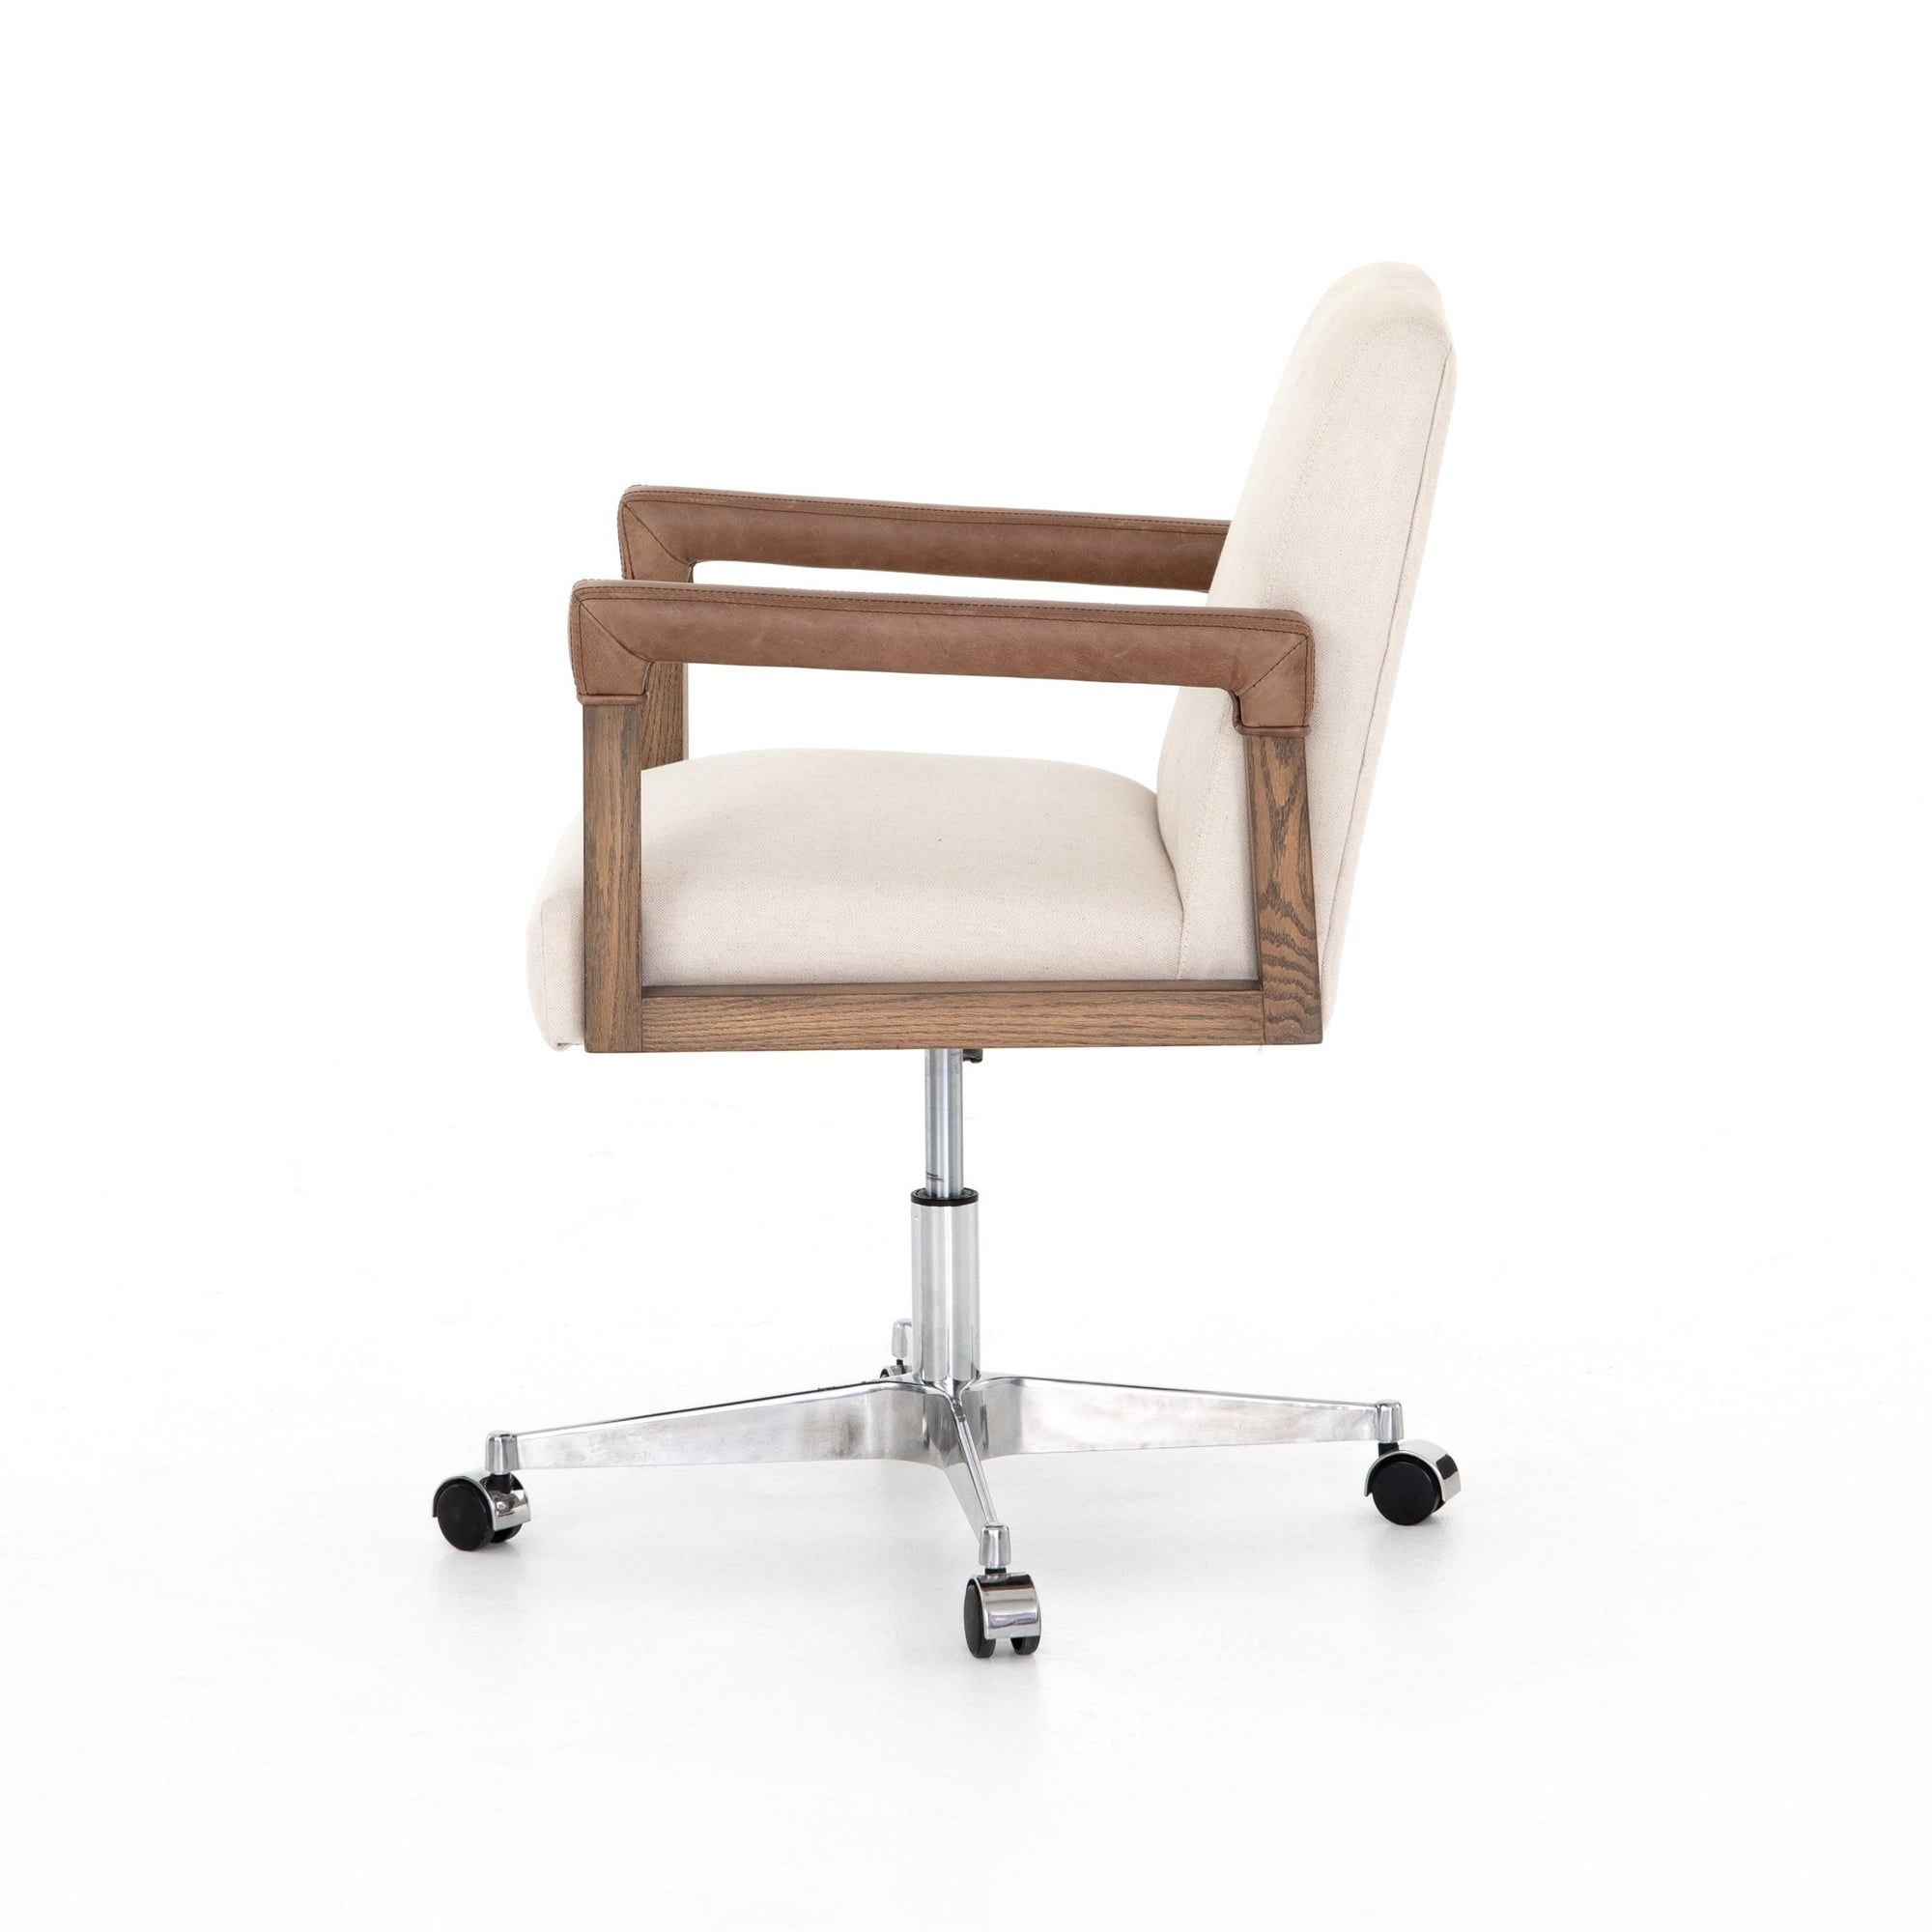 Four Hands Four Hands Reuben Desk Chair - Available in 2 Colors Harbor Natural CABT-9121-127